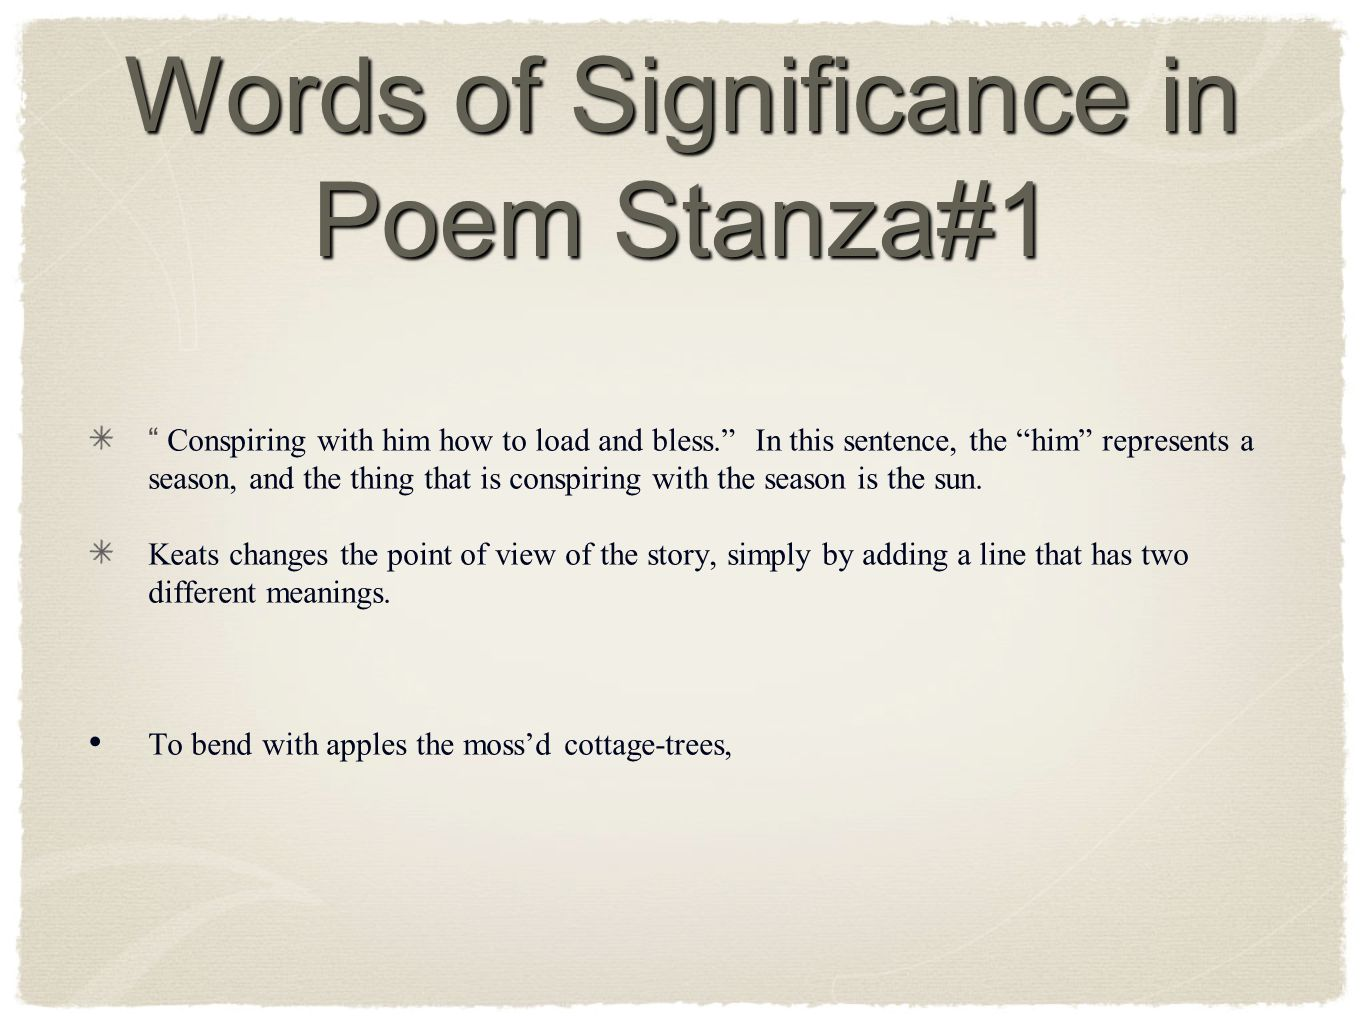 Words of Significance in Poem Stanza#1